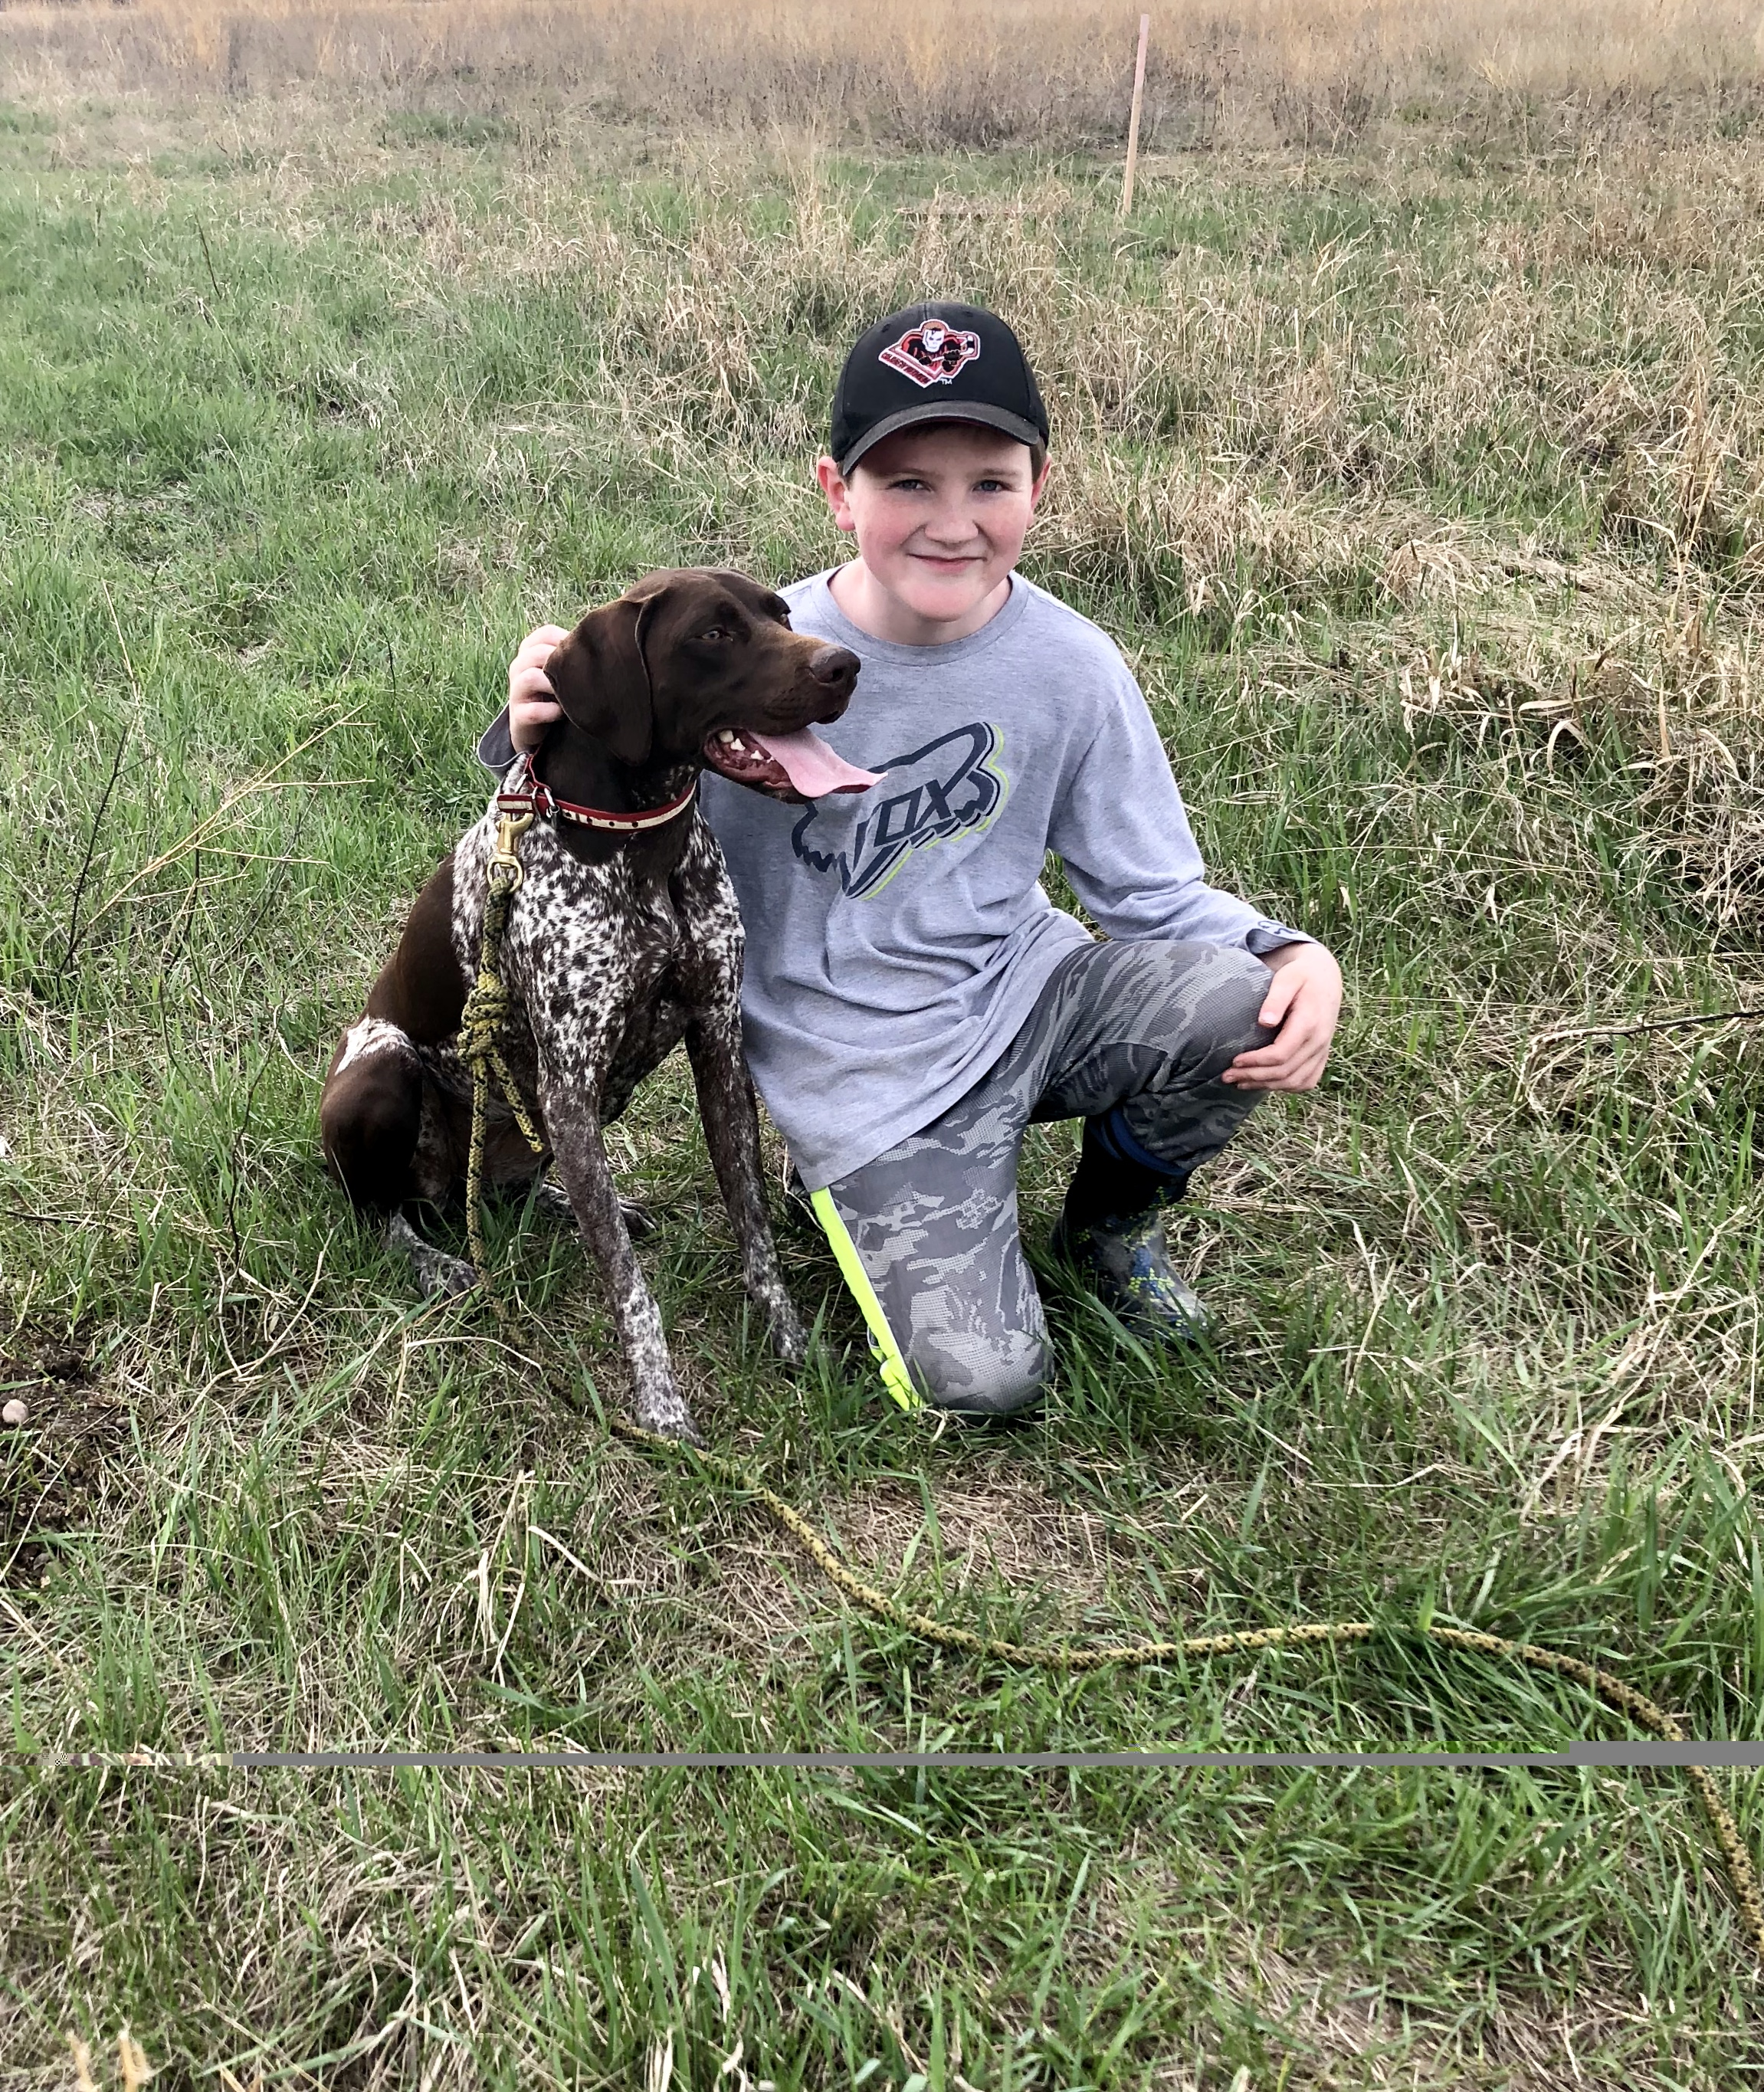 My oldest son loves being a part of the excitement around here. We have built some special bonds with our 4-legged guests and our goal is to build a lasting relationship with you so we can continue to enjoy your pets' friendship.